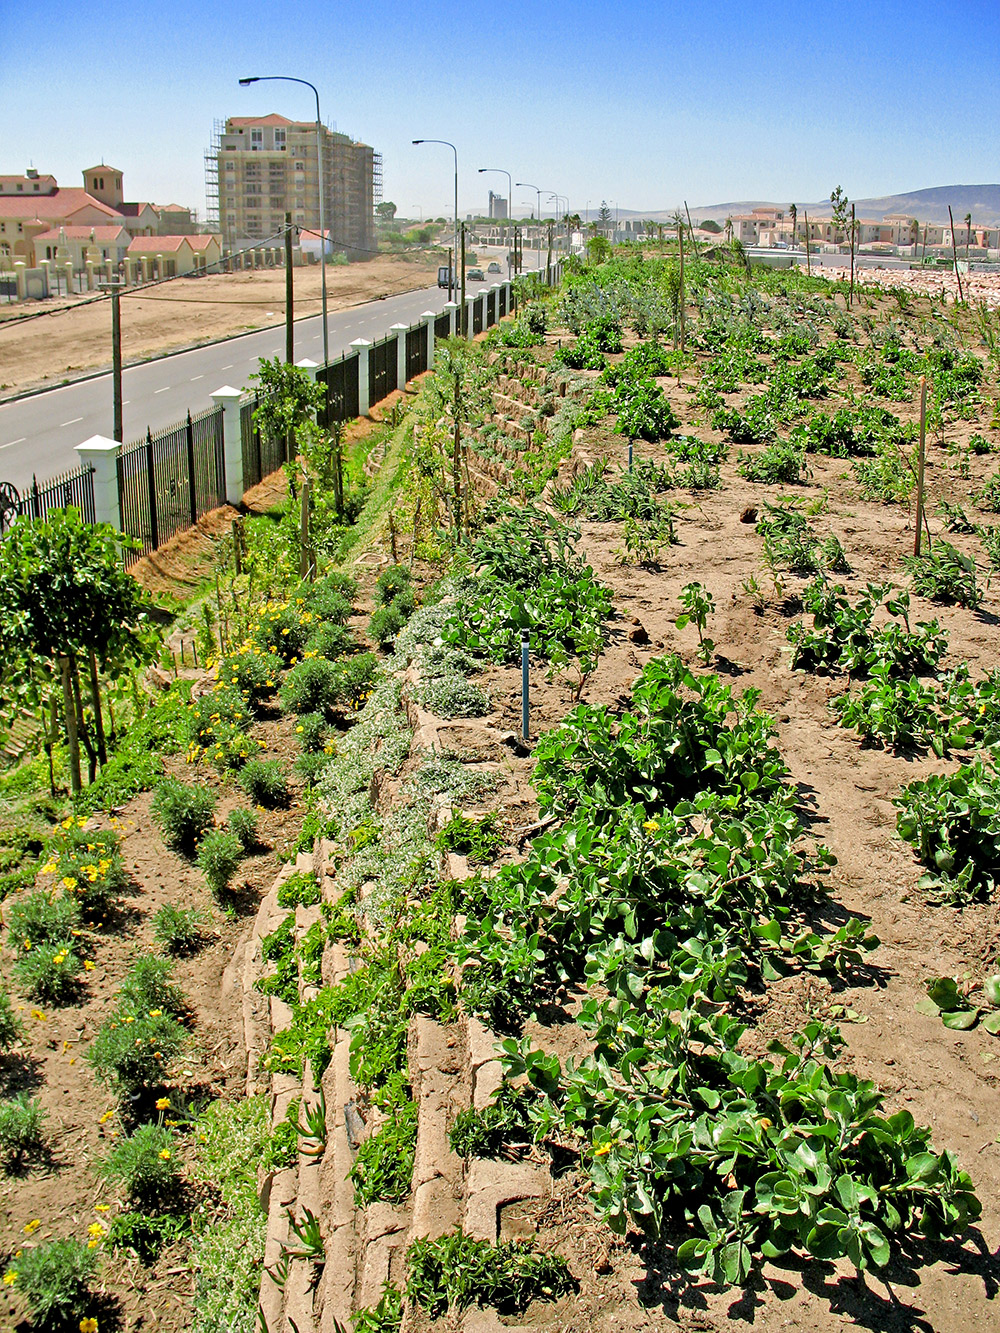 The landscaping team used the terraces to good effect by creating almost instant hanging gardens with mostly water wise indigenous planting.